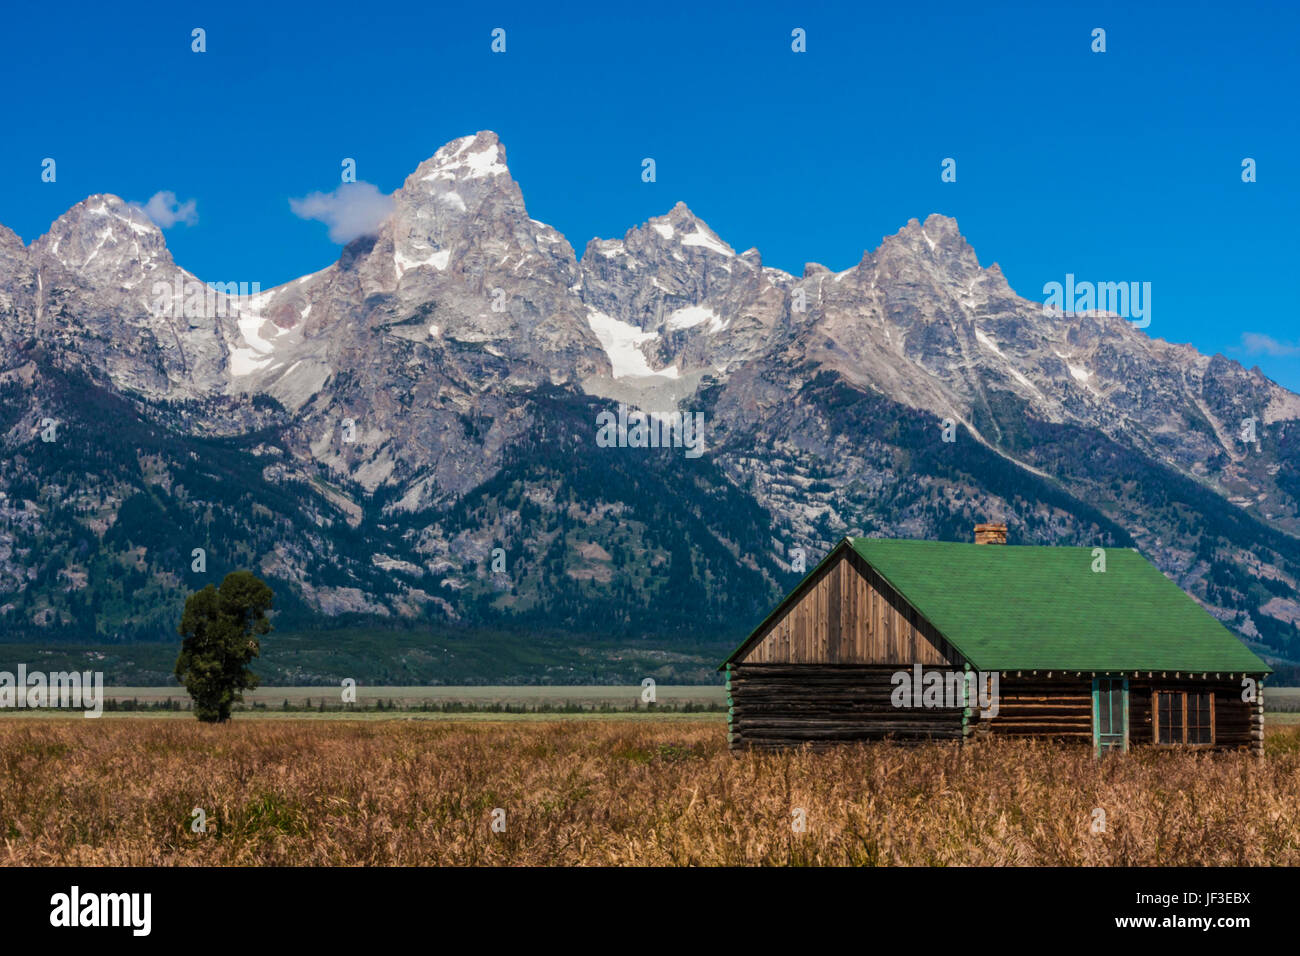 Abandoned farm building on 'Mormon Row'  wtih the Grand Tetons Mountain Range in the background, located - Stock Image